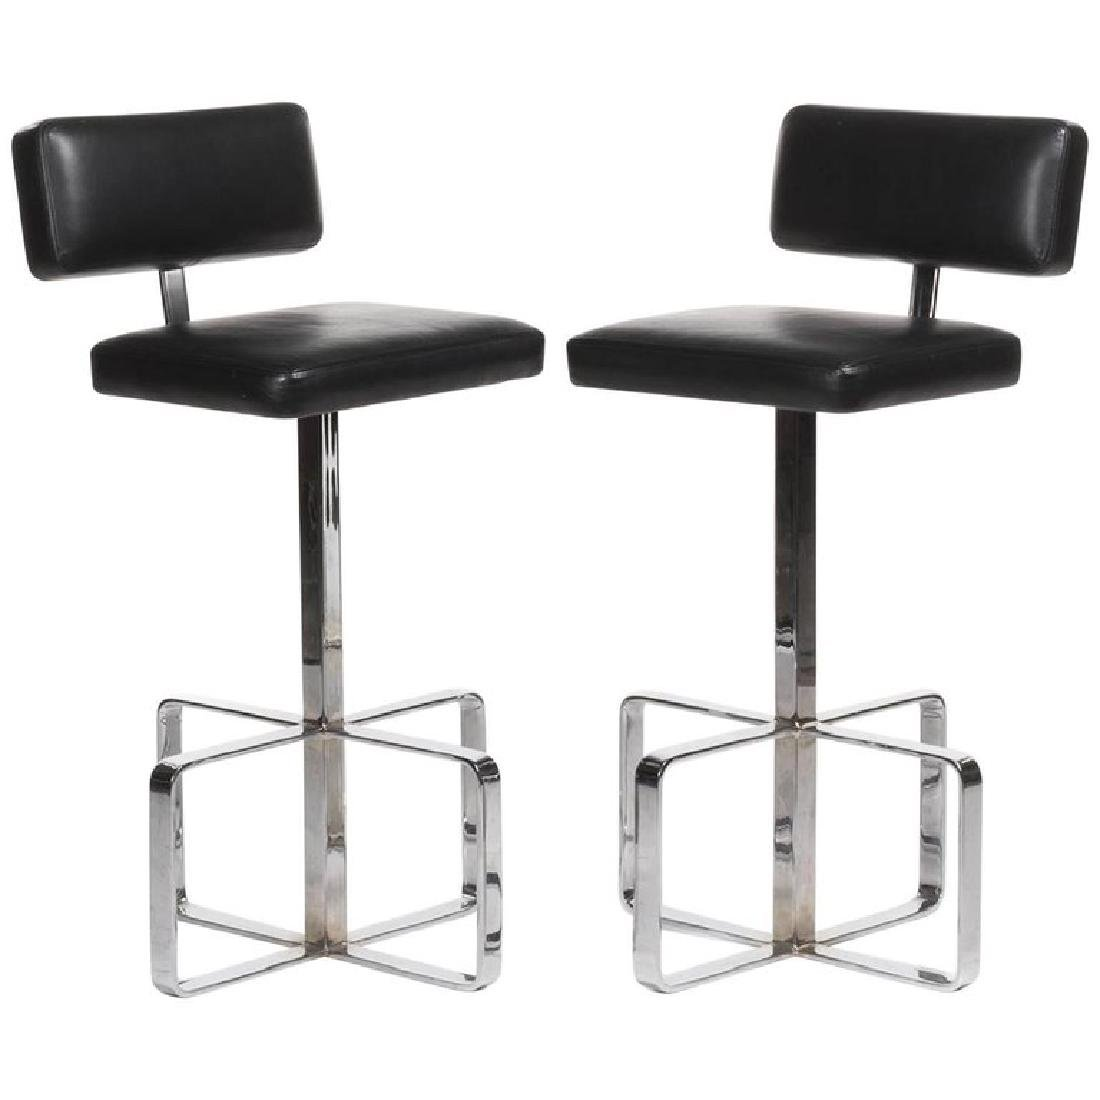 Italian 1970s Leather and Chrome Swivel Barstools, Pair